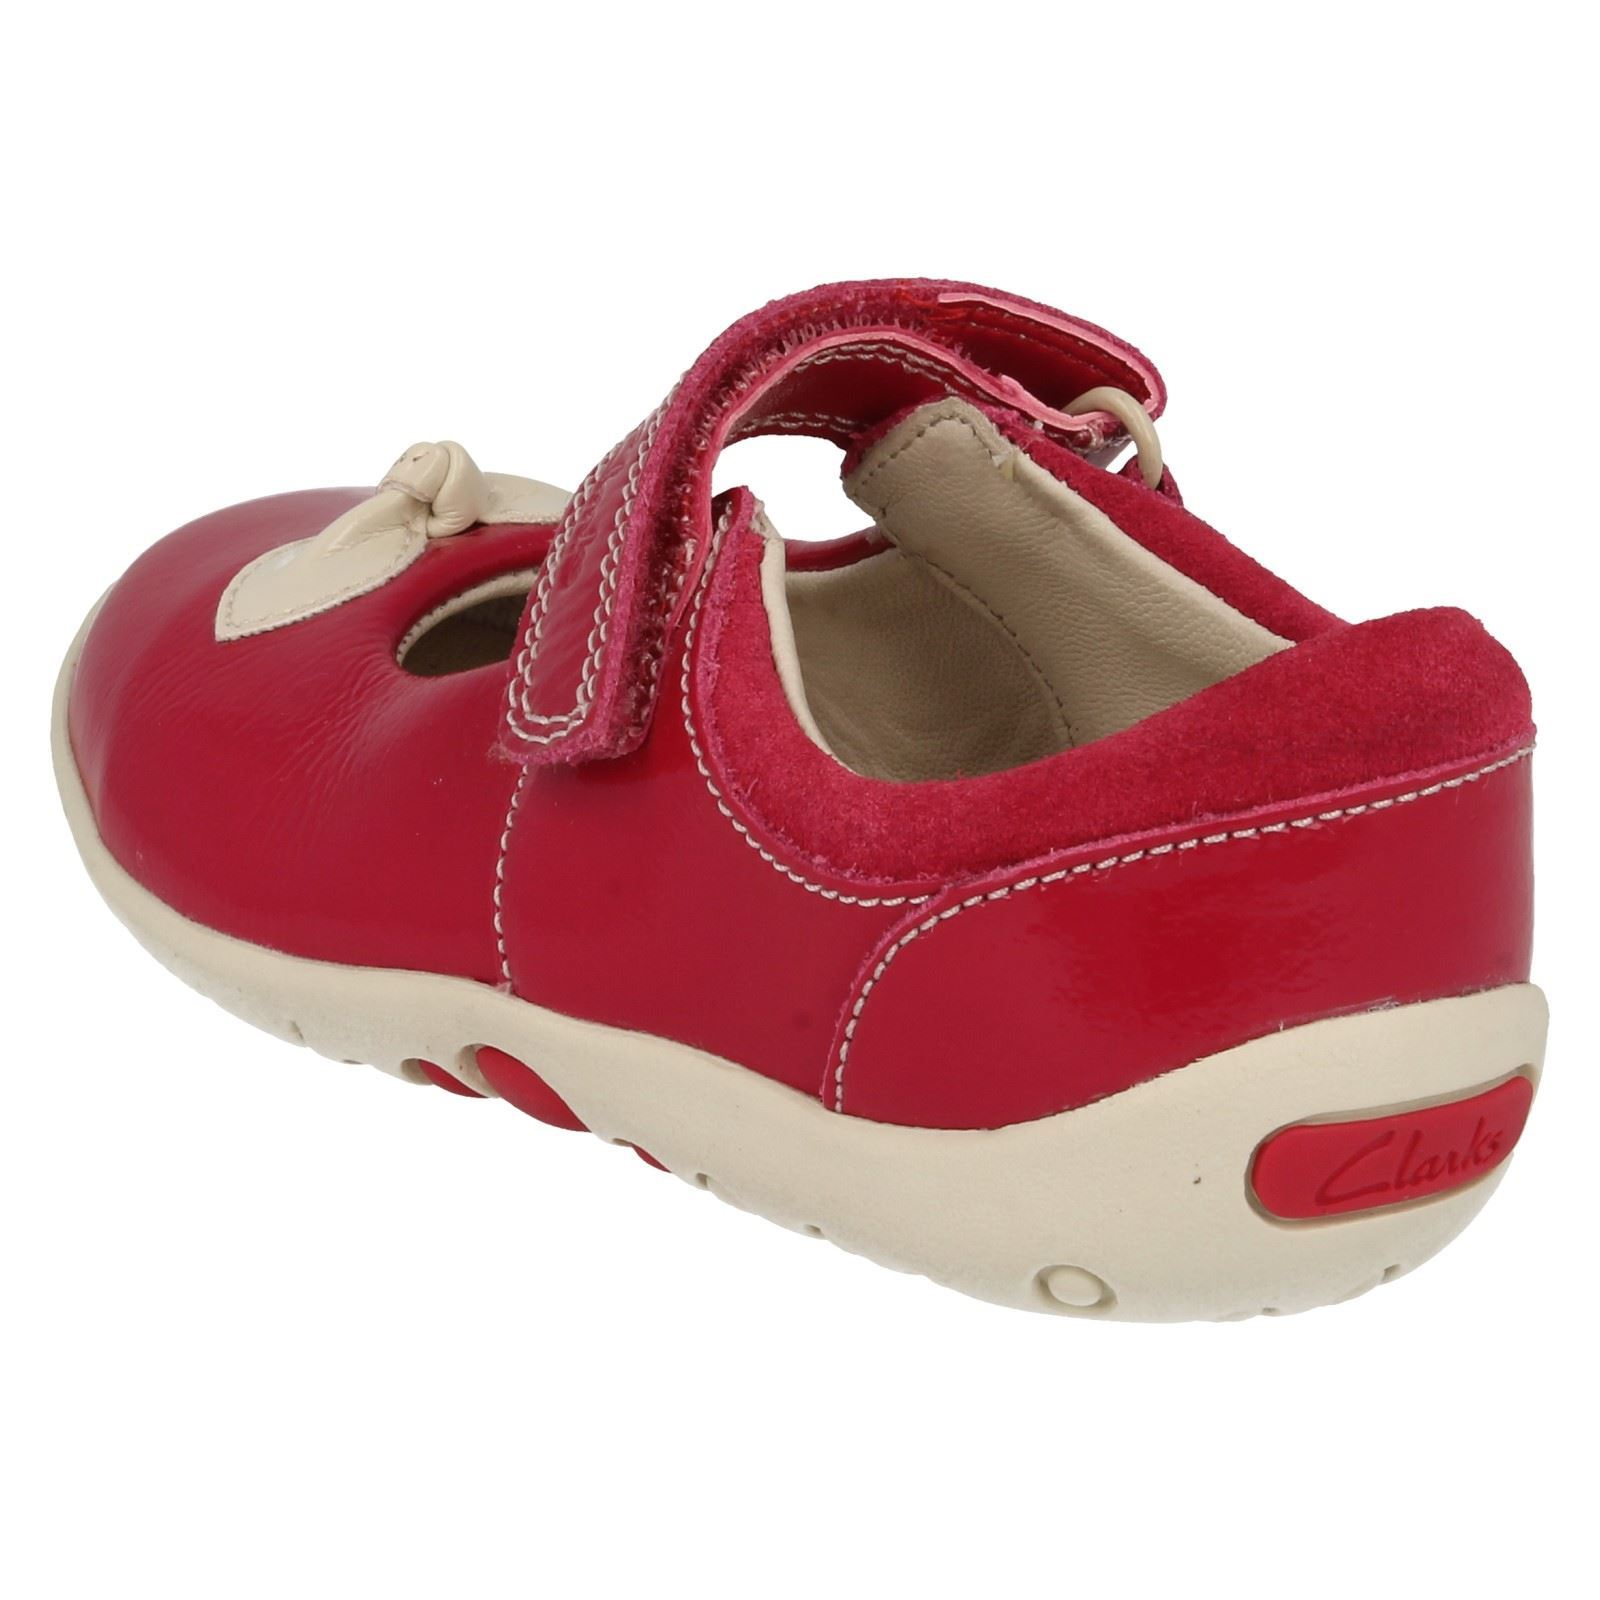 Clarks Chaussures Design Filles Chaussures Avec Clarks Nud Filles Nud Design Avec qgSnwY